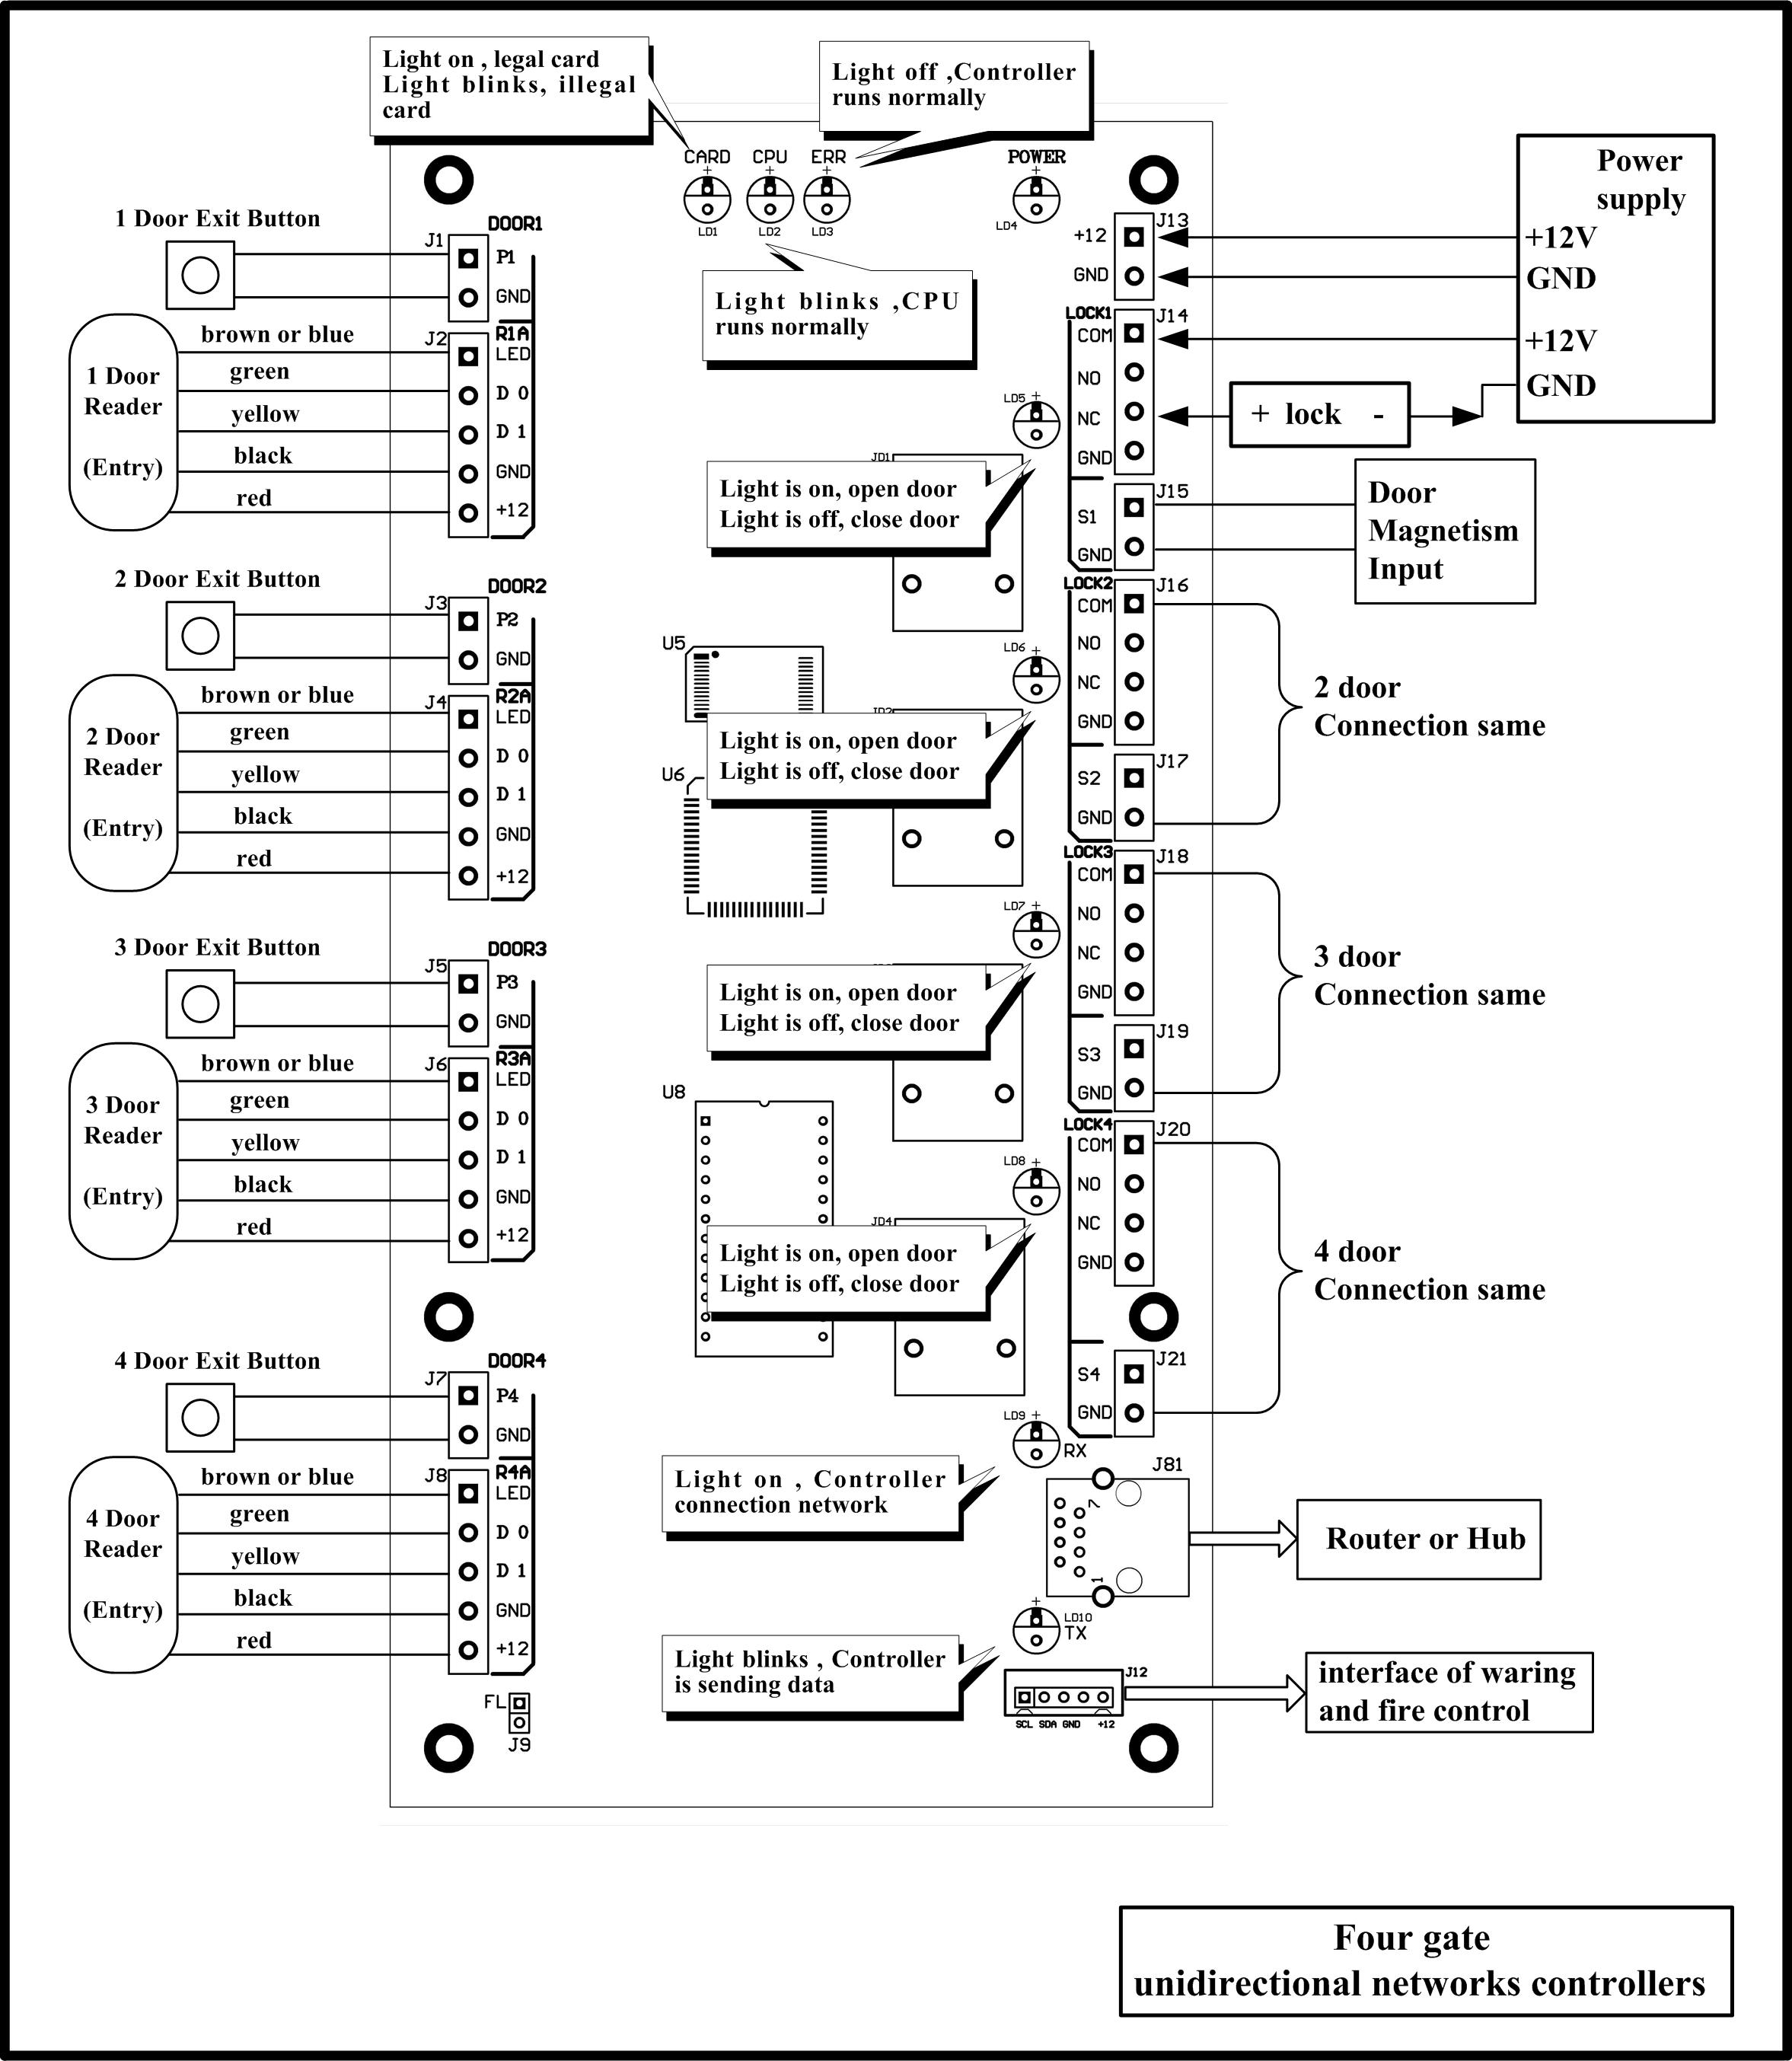 access control system wiring diagram sample. Black Bedroom Furniture Sets. Home Design Ideas